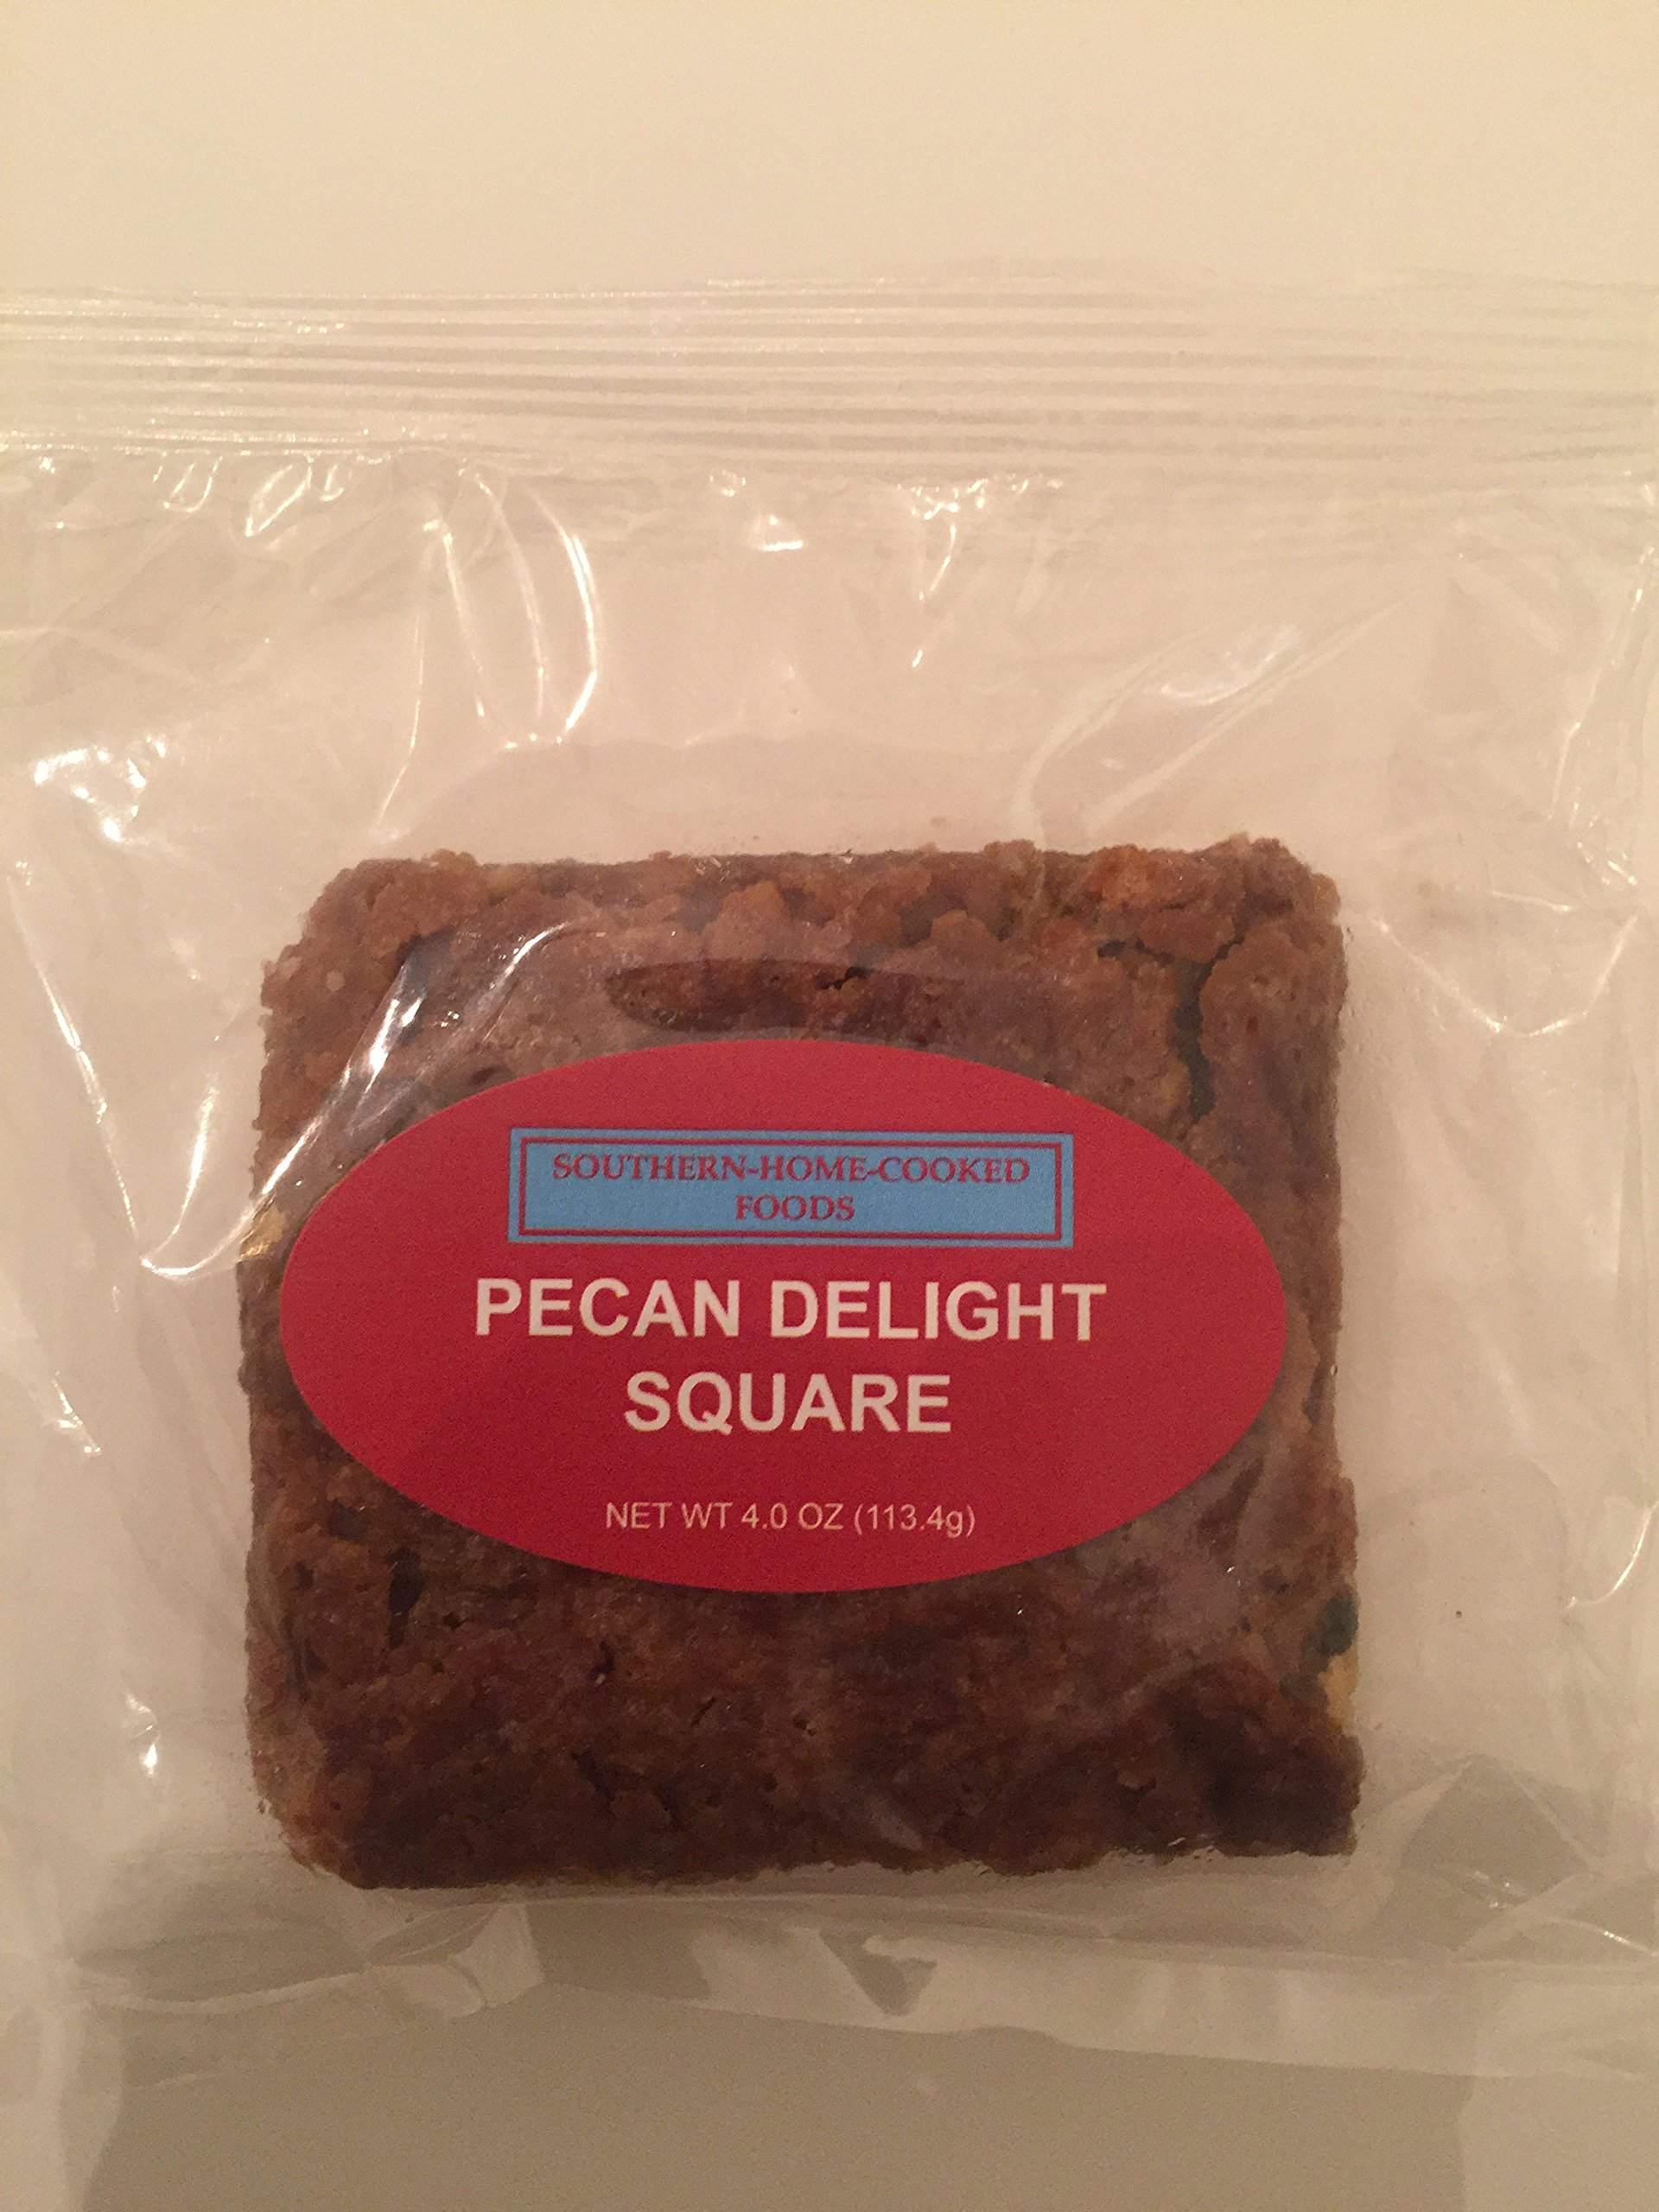 Southern Home Cooked Food's Pecan Delight Square - 3.6 oz Squares (Individually Packaged - 12 per Box)